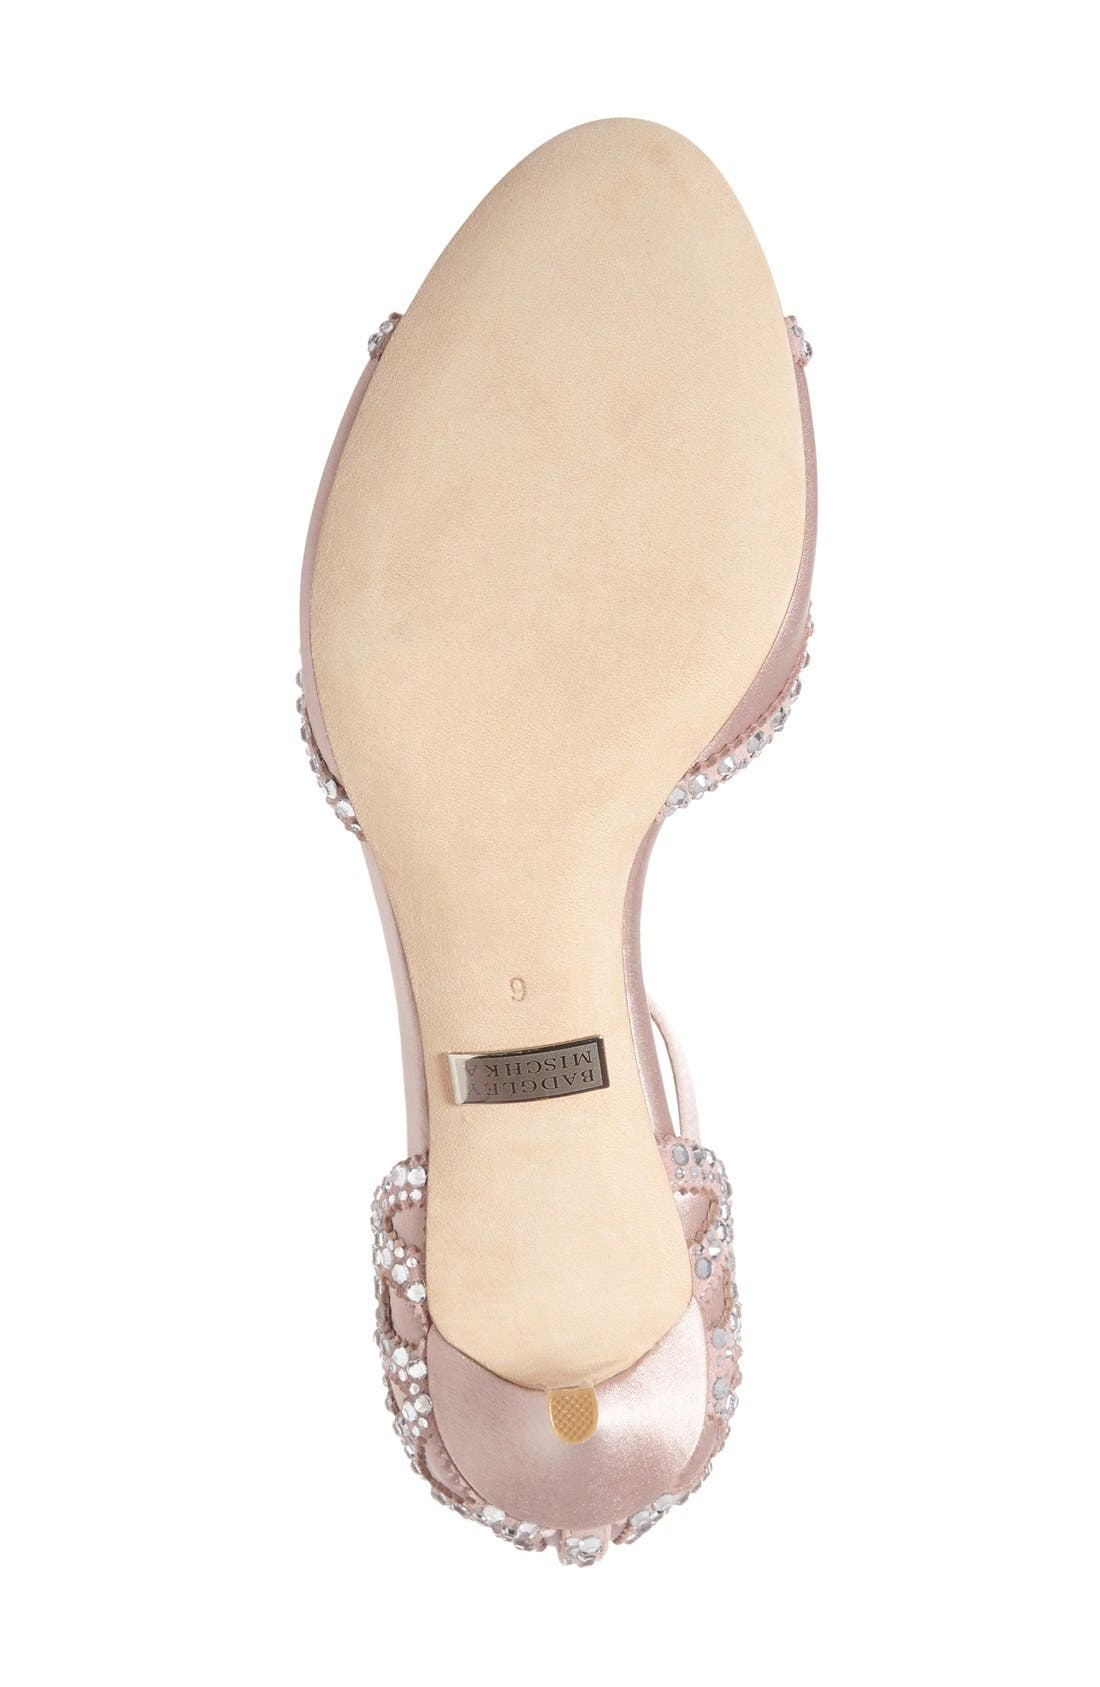 'Gillian' Crystal Embellished d'Orsay Sandal,                             Alternate thumbnail 4, color,                             BLUSH SATIN